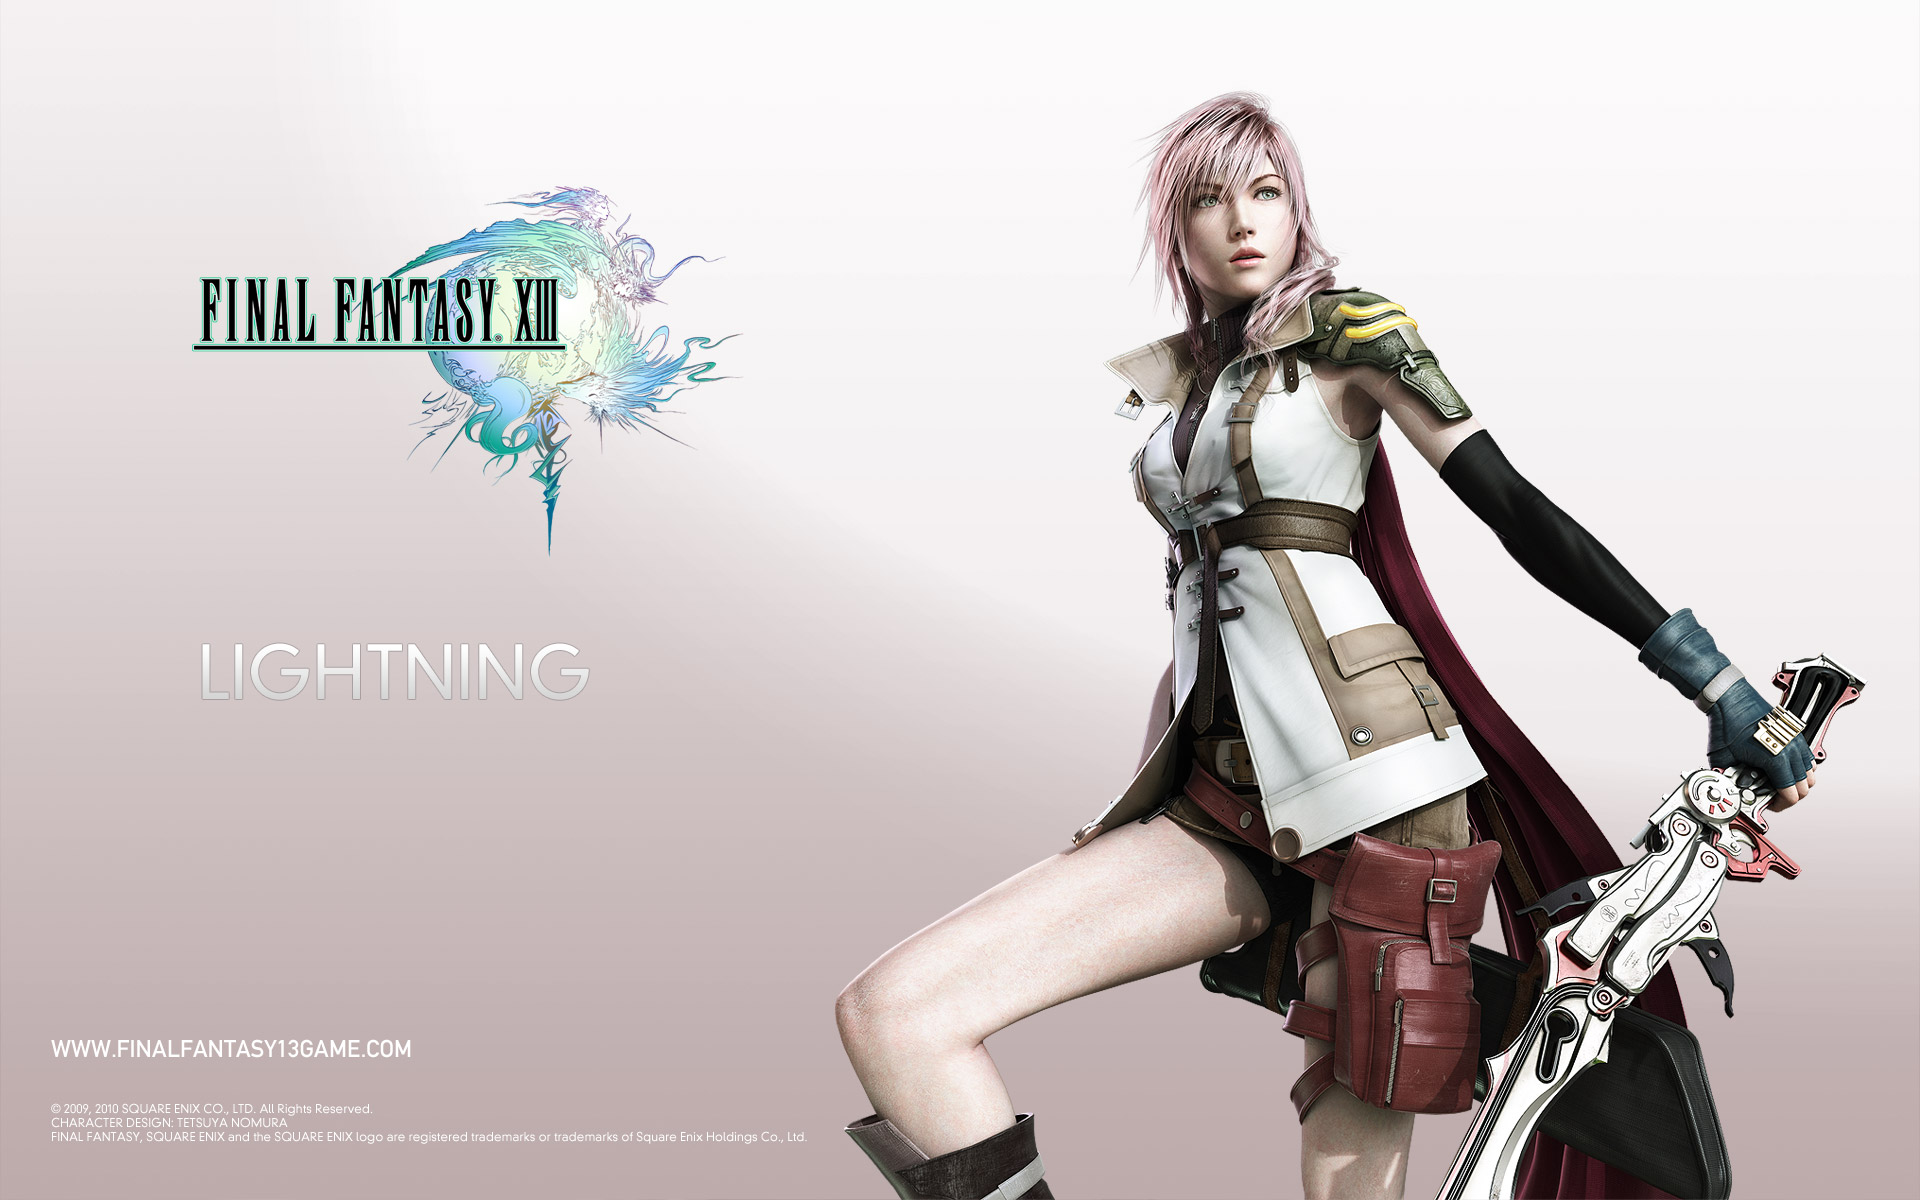 image - lightning ffxiii 1920x1200 uk | final fantasy wiki